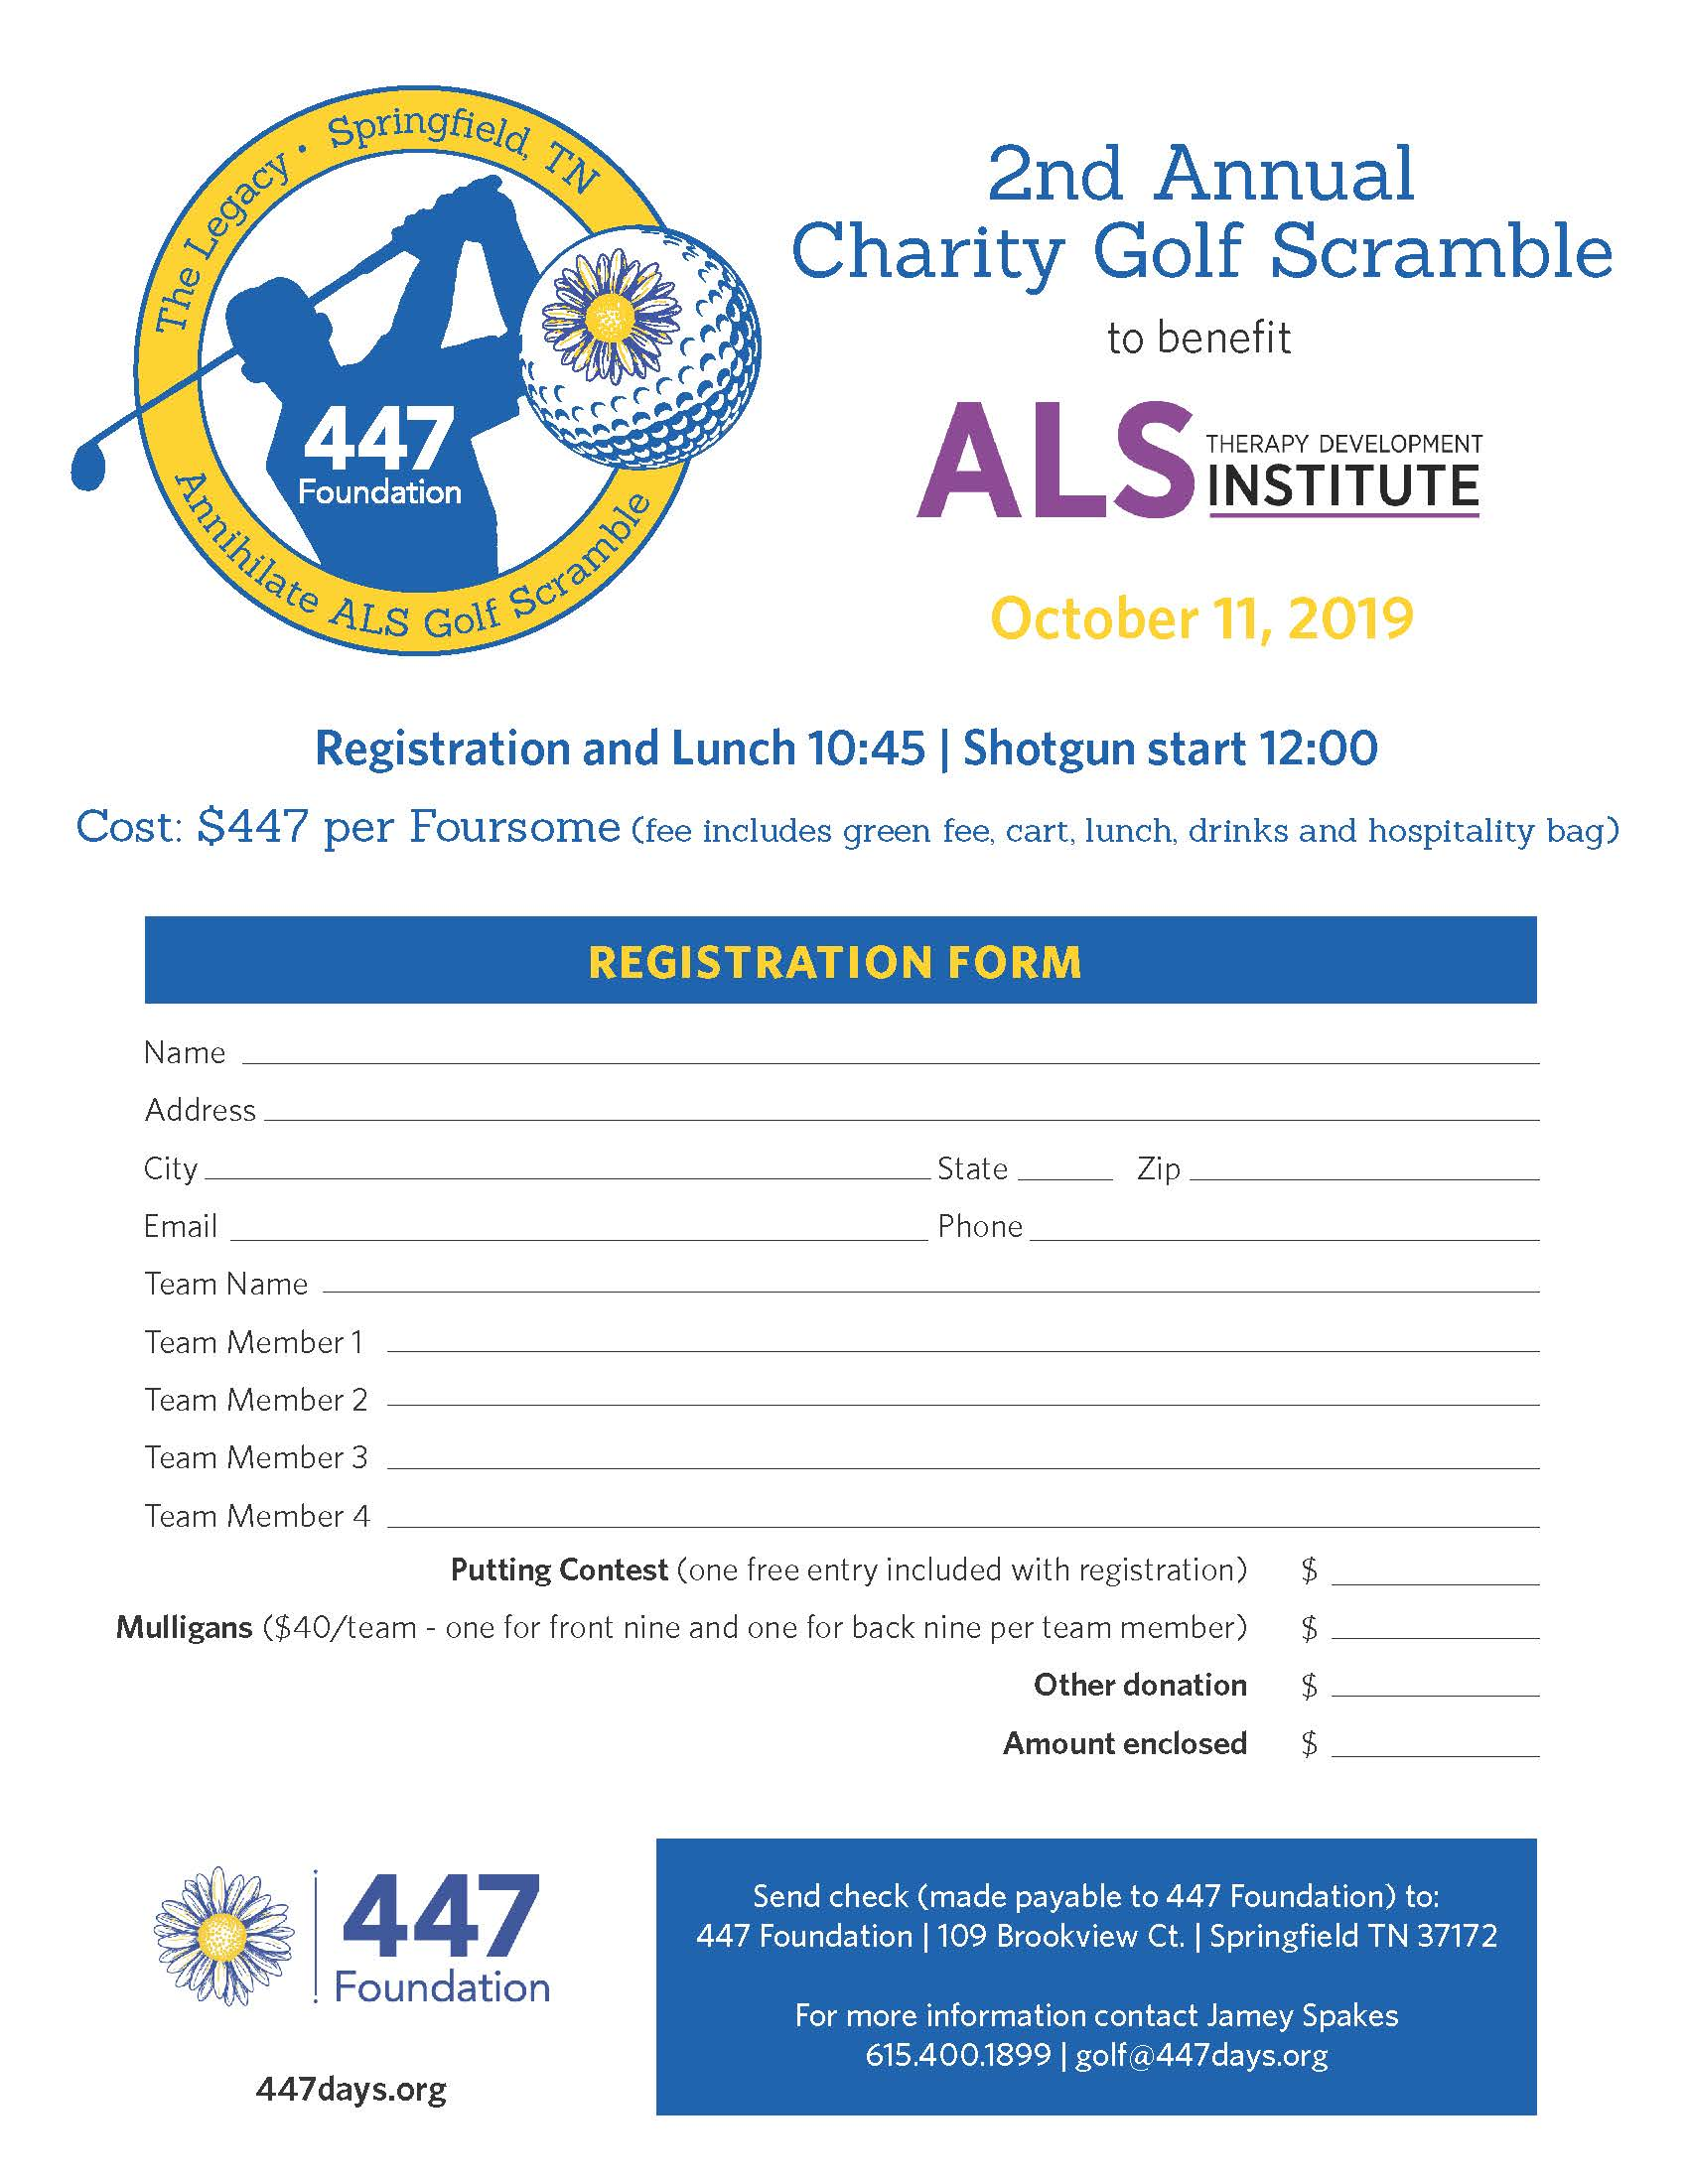 2019 Registration Form and Sponsorship Opportunities_Page_1.jpg